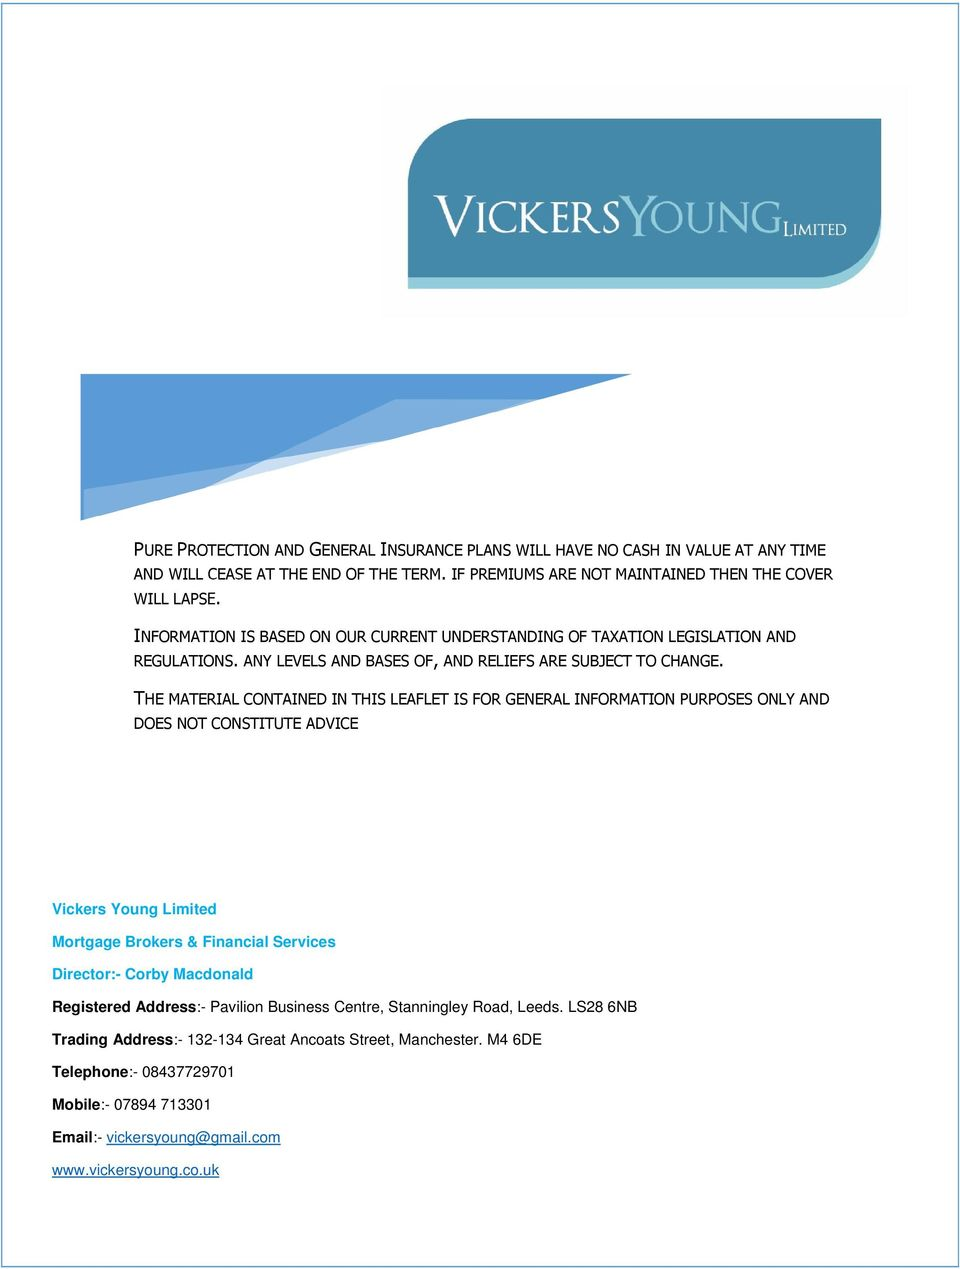 THE MATERIAL CONTAINED IN THIS LEAFLET IS FOR GENERAL INFORMATION PURPOSES ONLY AND DOES NOT CONSTITUTE ADVICE Vickers Young Limited Mortgage Brokers & Financial Services Director:- Corby